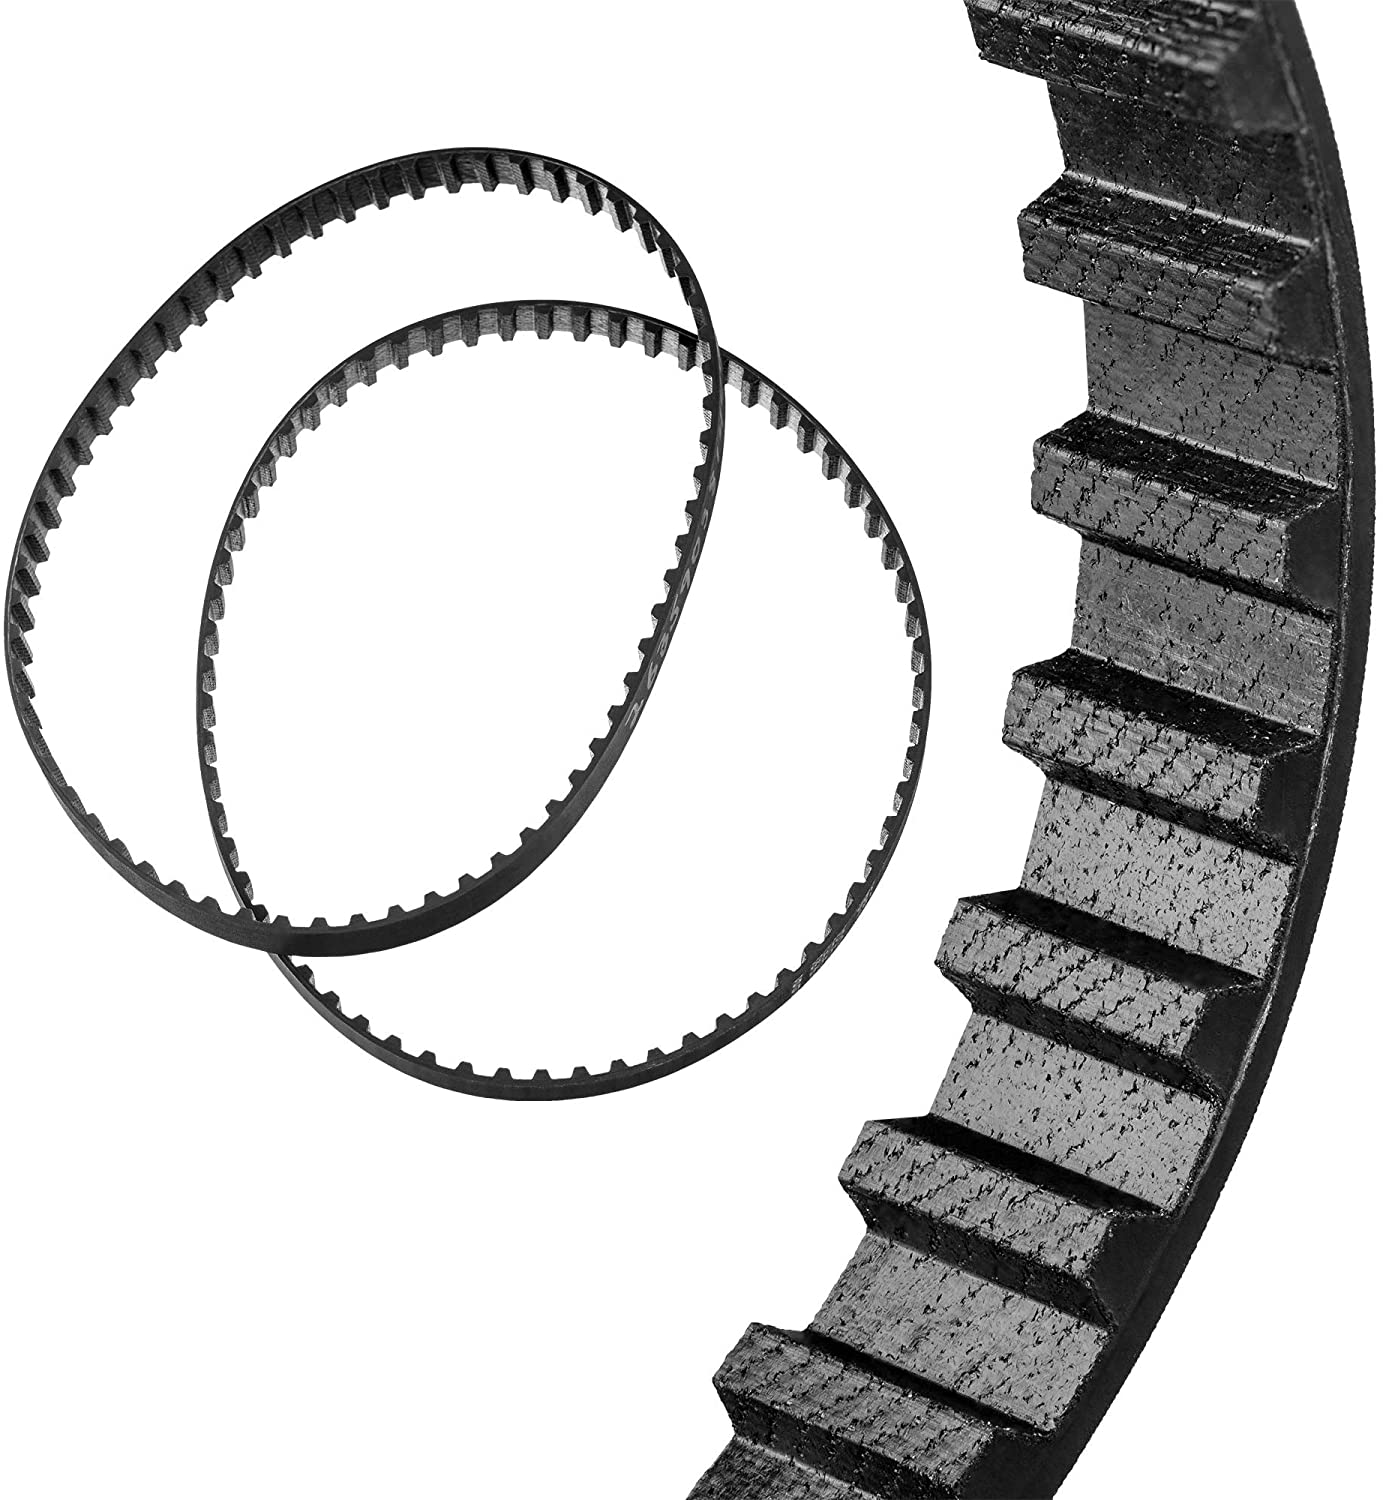 Jointer Planer Drive Belts Set - Fits Craftsman Sears Special price for a limited time Pl Ranking TOP9